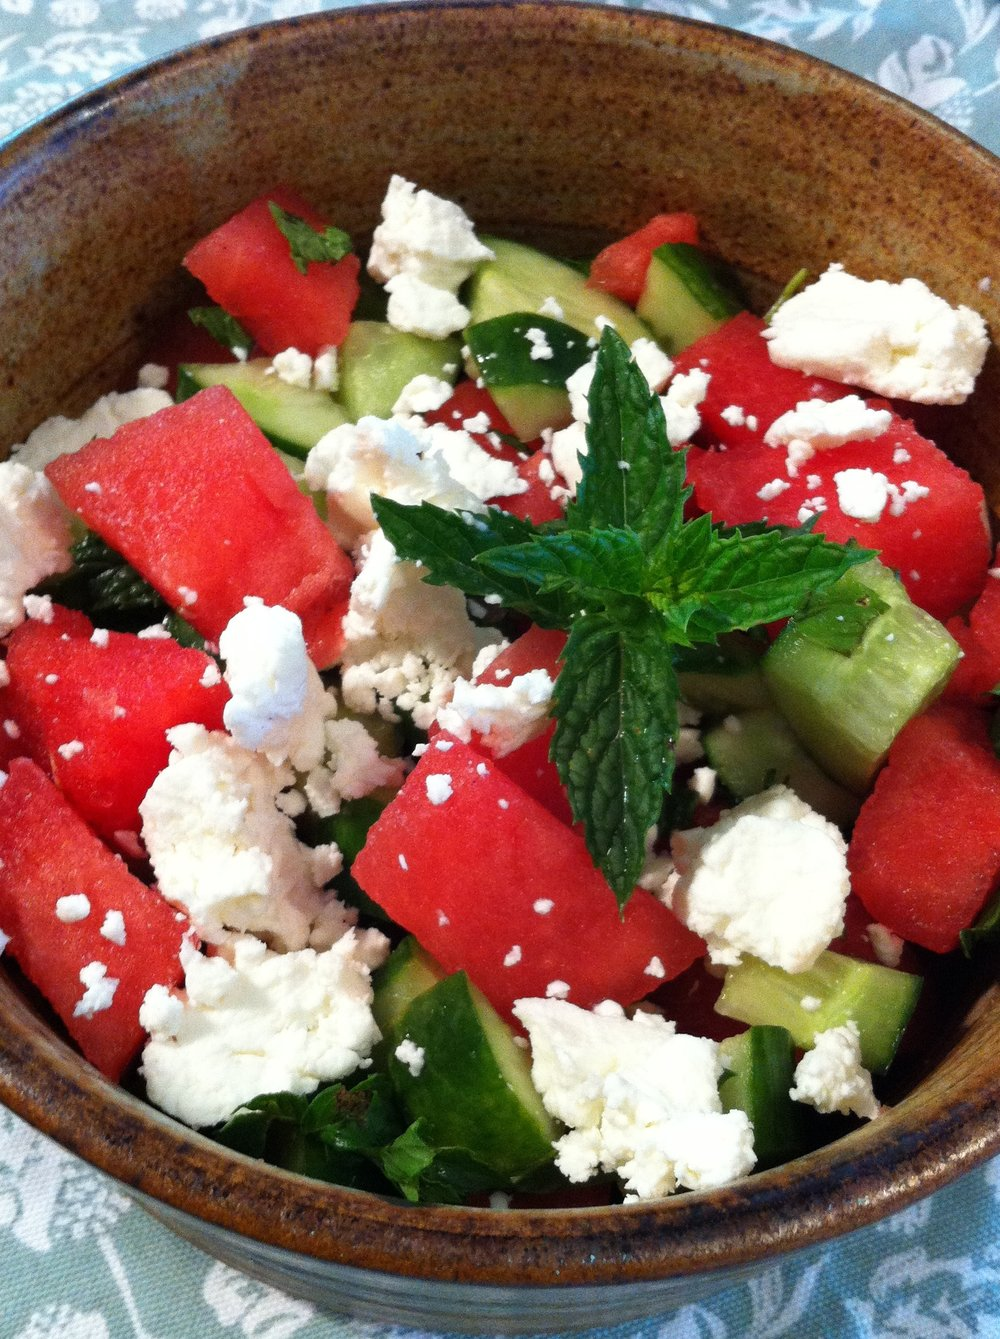 Watermelon Salad with Chèvre and Mint